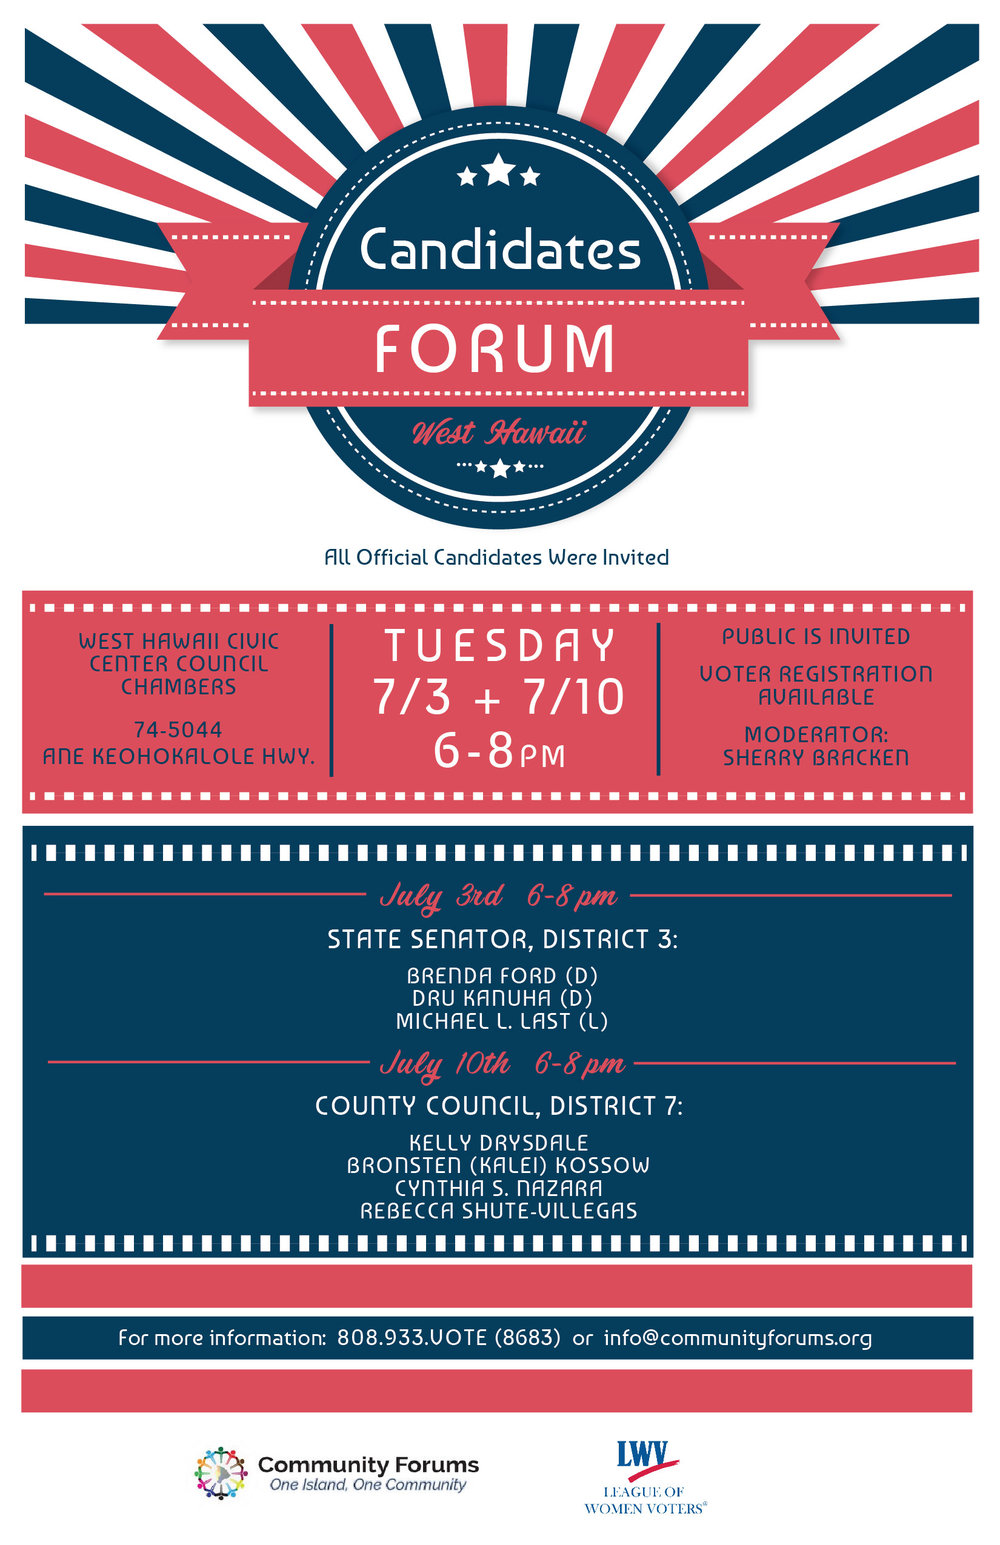 Candidates Forum_7.3.18 and 7.10.18_KCTC 11x17 poster-03-01.jpg